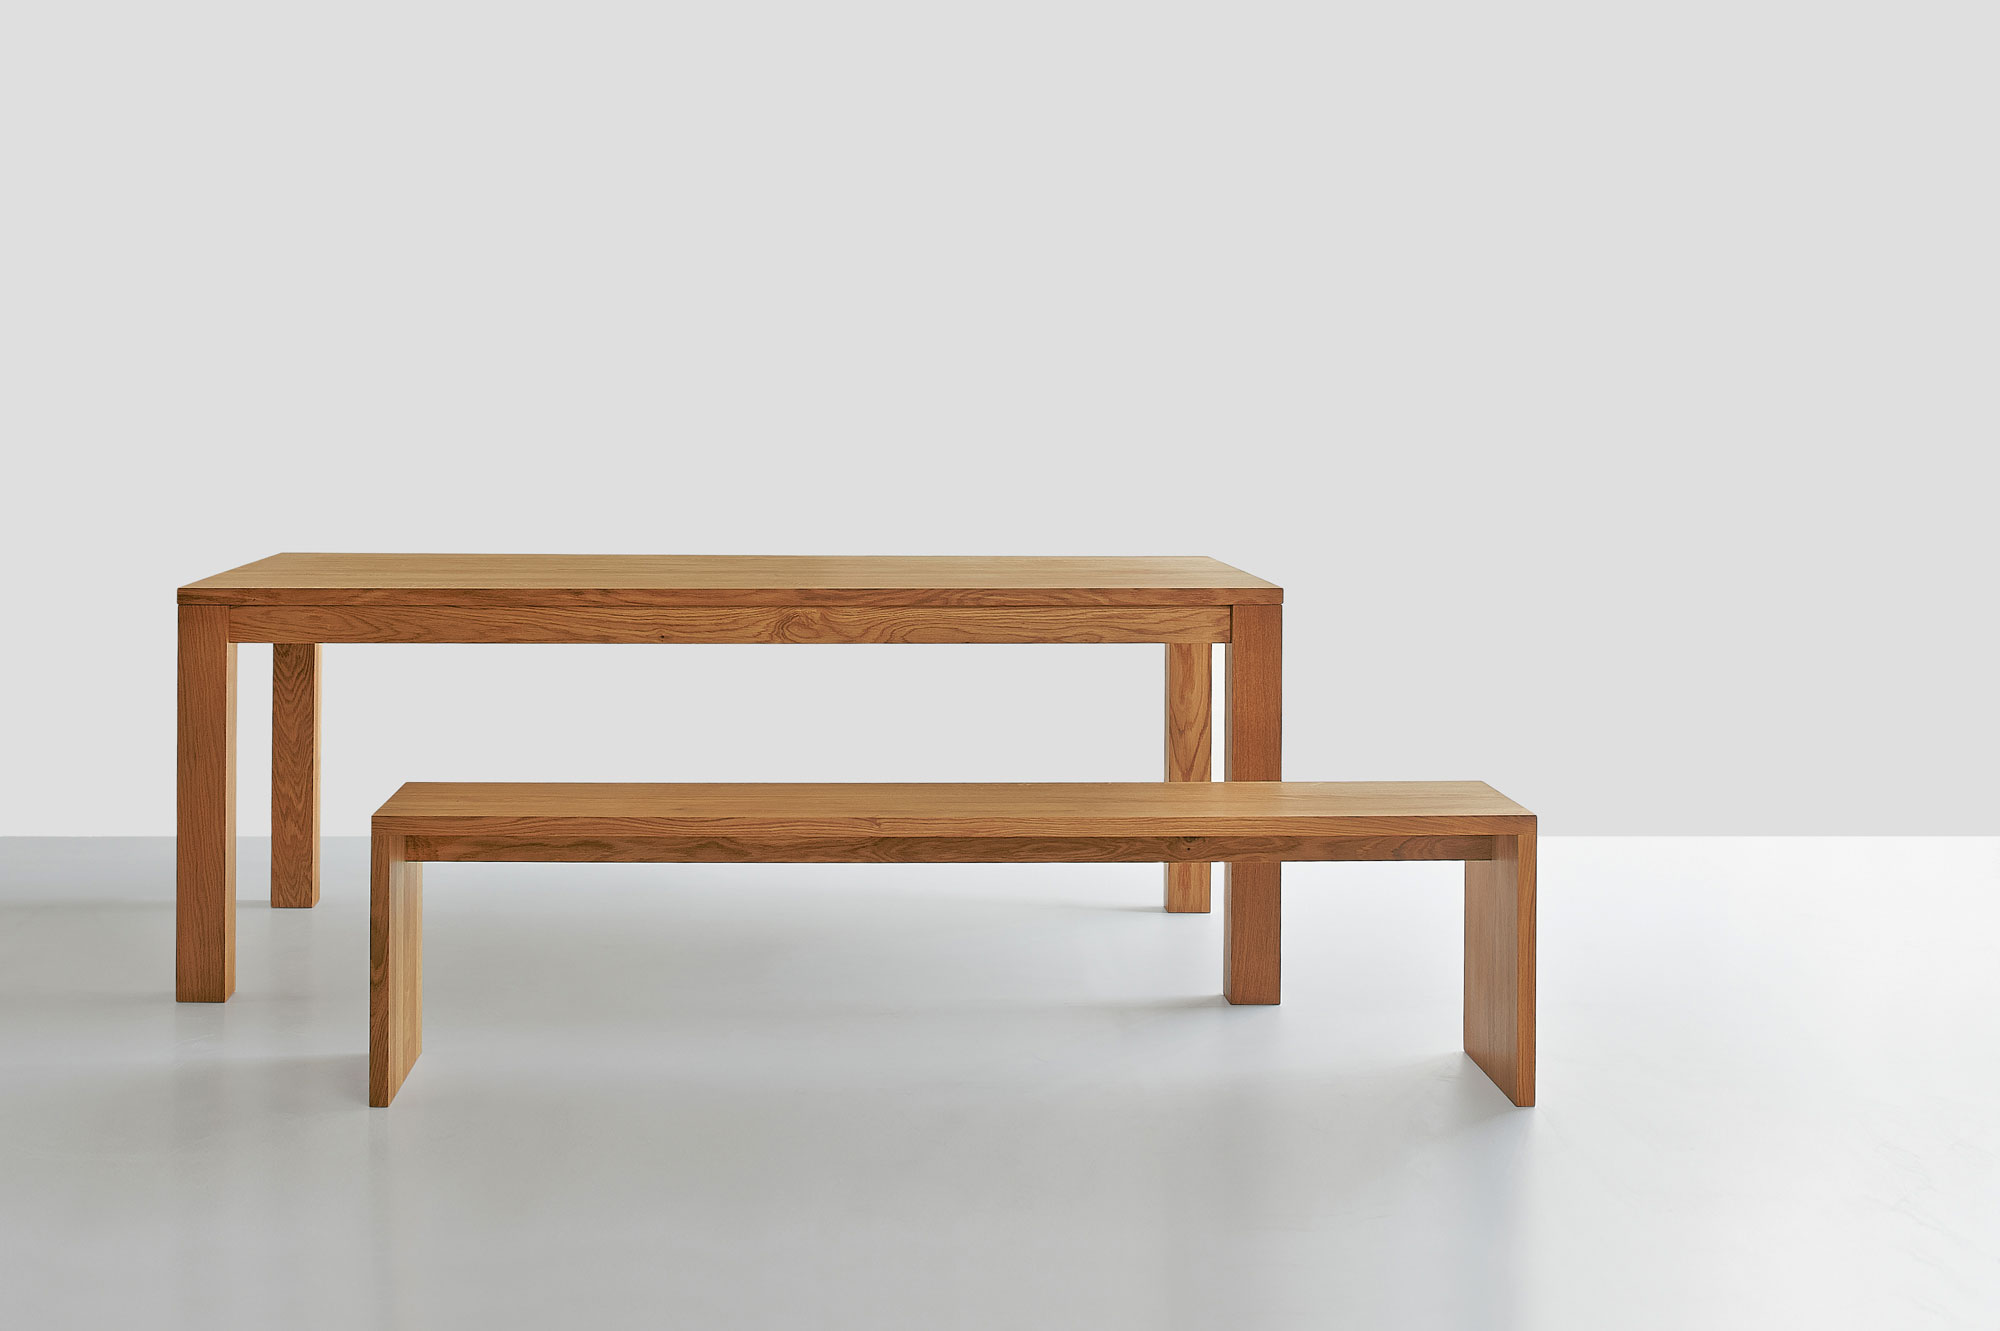 Solid Wood Bench MENA 3 1010 custom made in solid wood by vitamin design